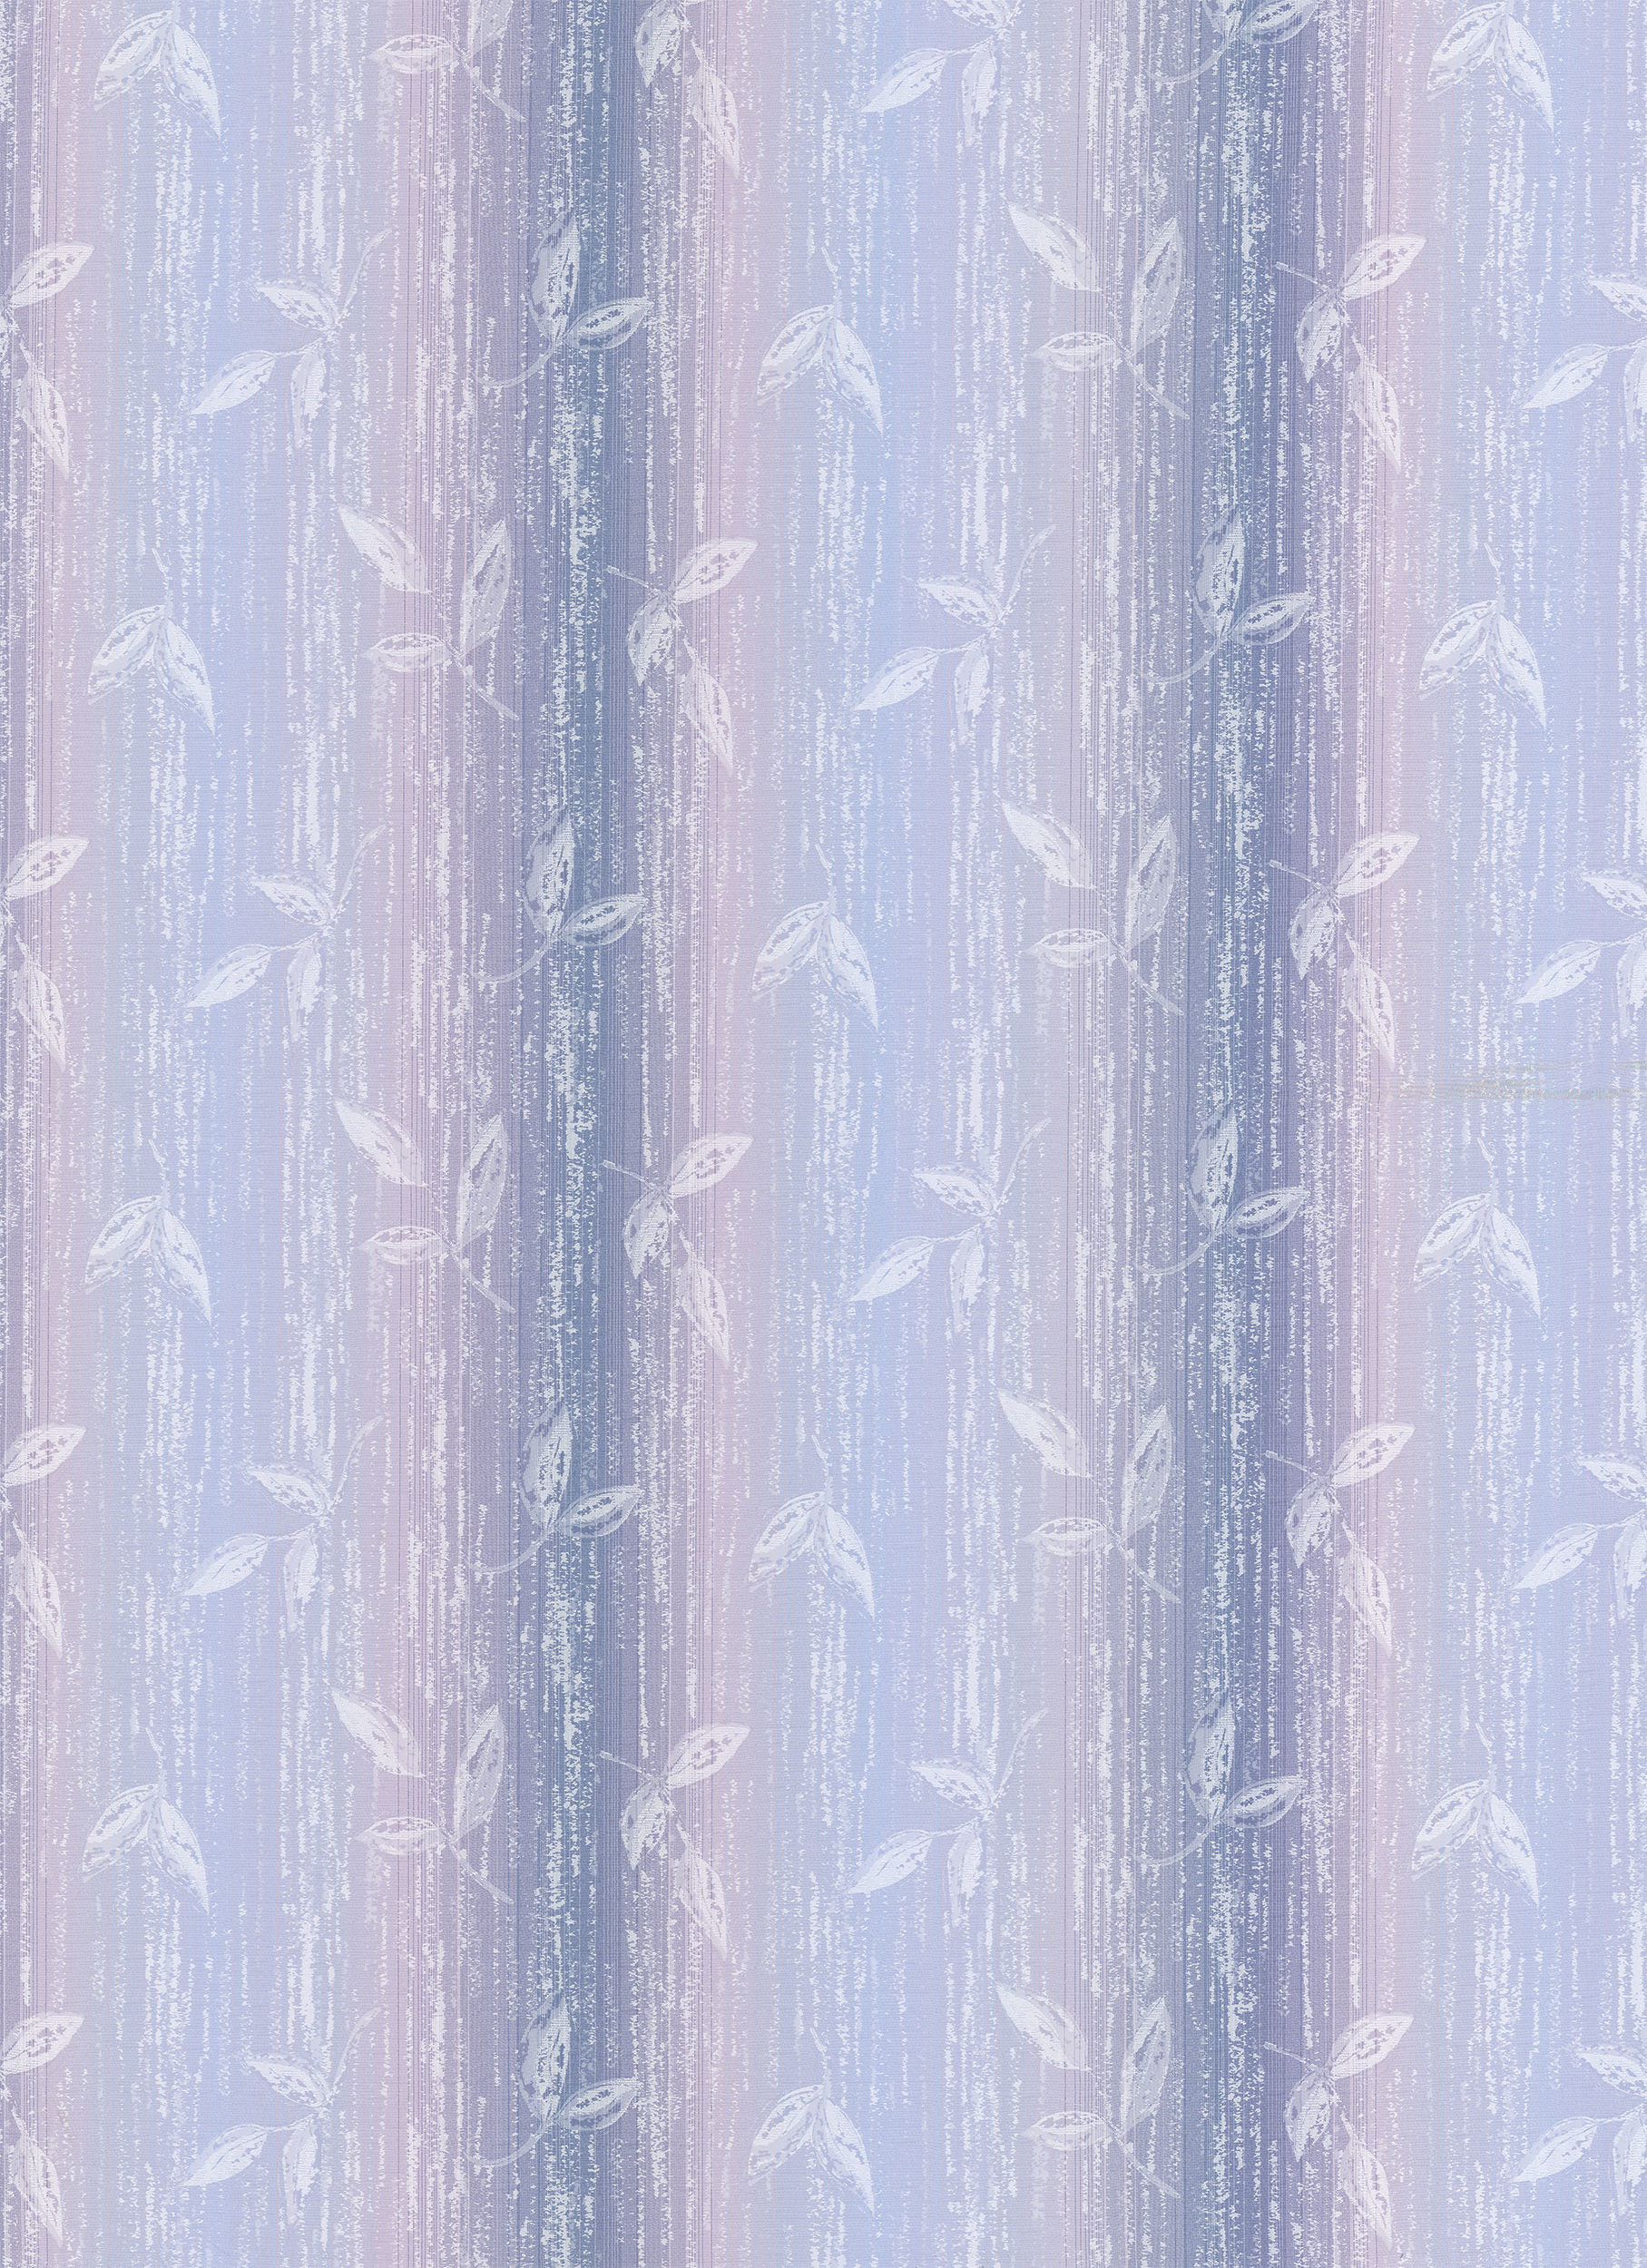 1190-RAINFOREST-17-PURPLE-RAIN-2